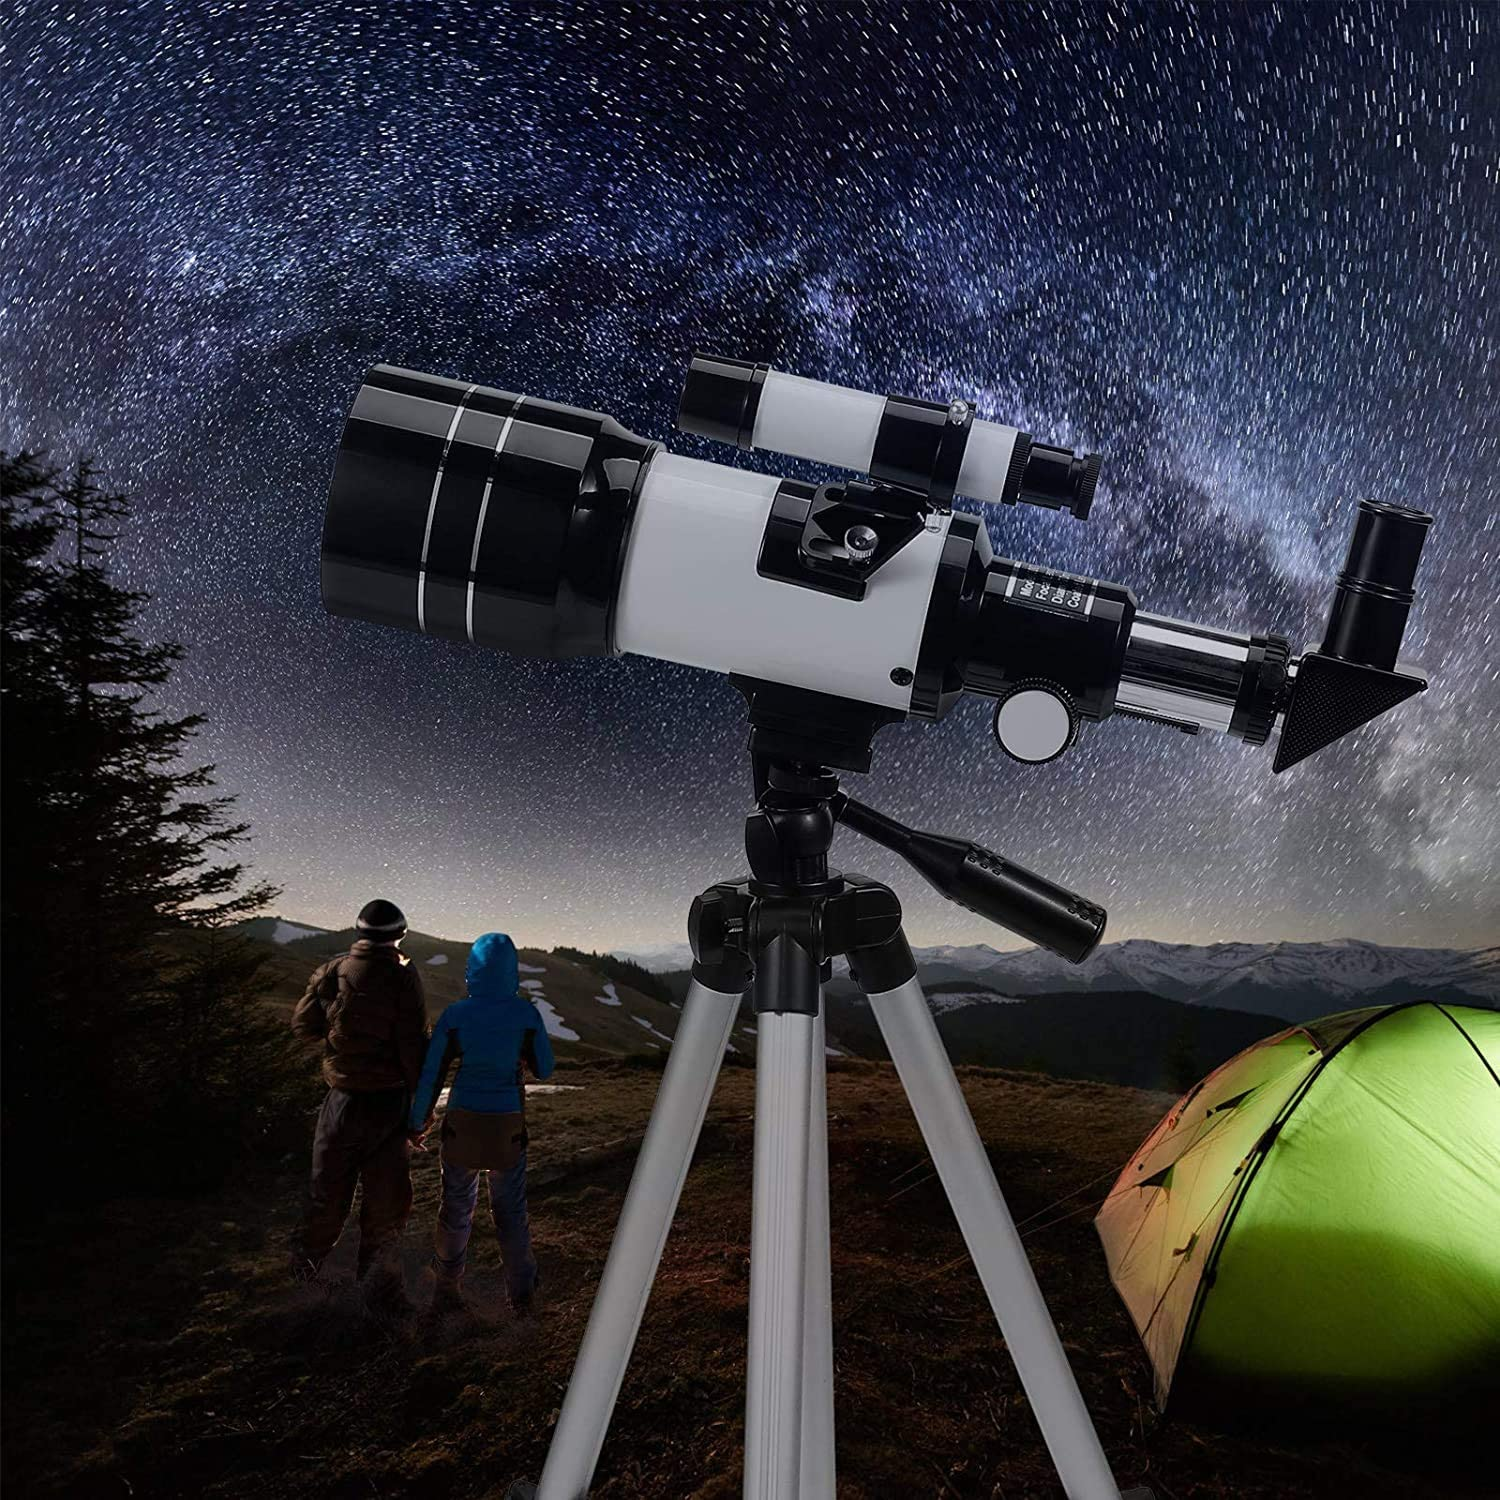 Telescope for Kids &Adults &Beginners,70mm Aperture 300mm AZ Mount, Fully Multi-Coated Optics, Portable Astronomy Refractor Telescope with an Adjustable Tripod, A Phone Adapter